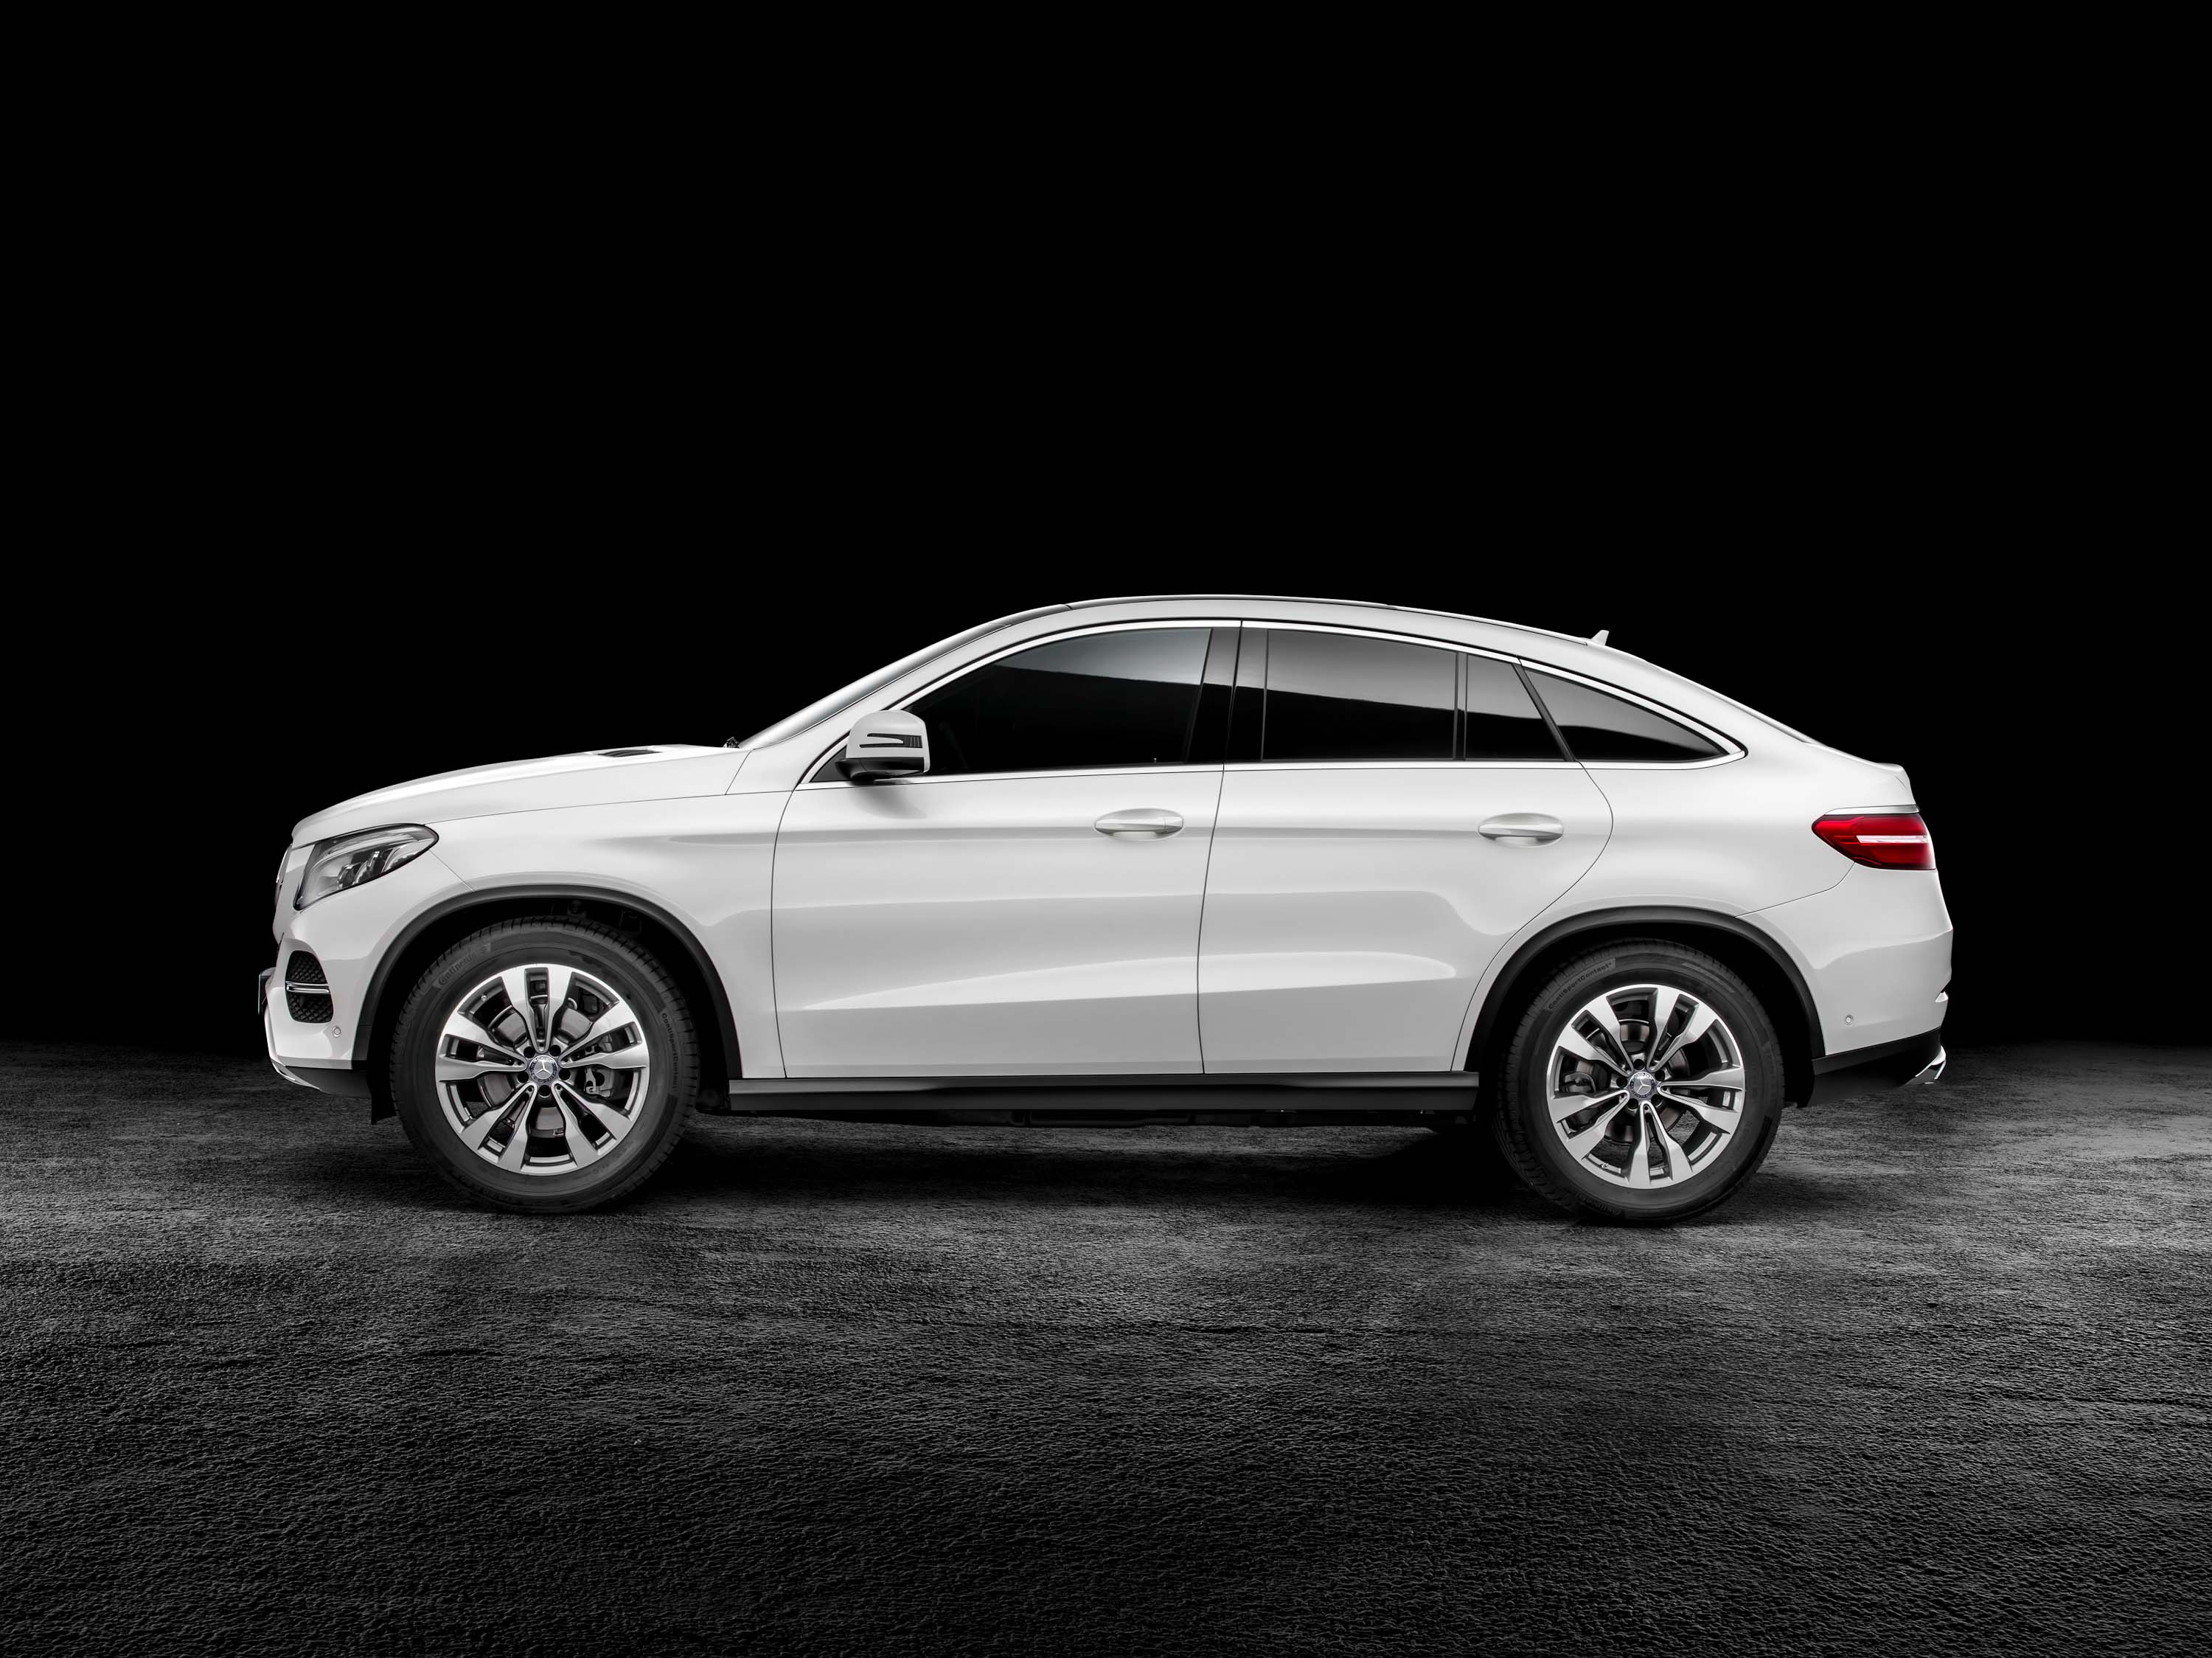 c292 mercedes benz gle coupe debuts softcore amg variant between the axles. Black Bedroom Furniture Sets. Home Design Ideas